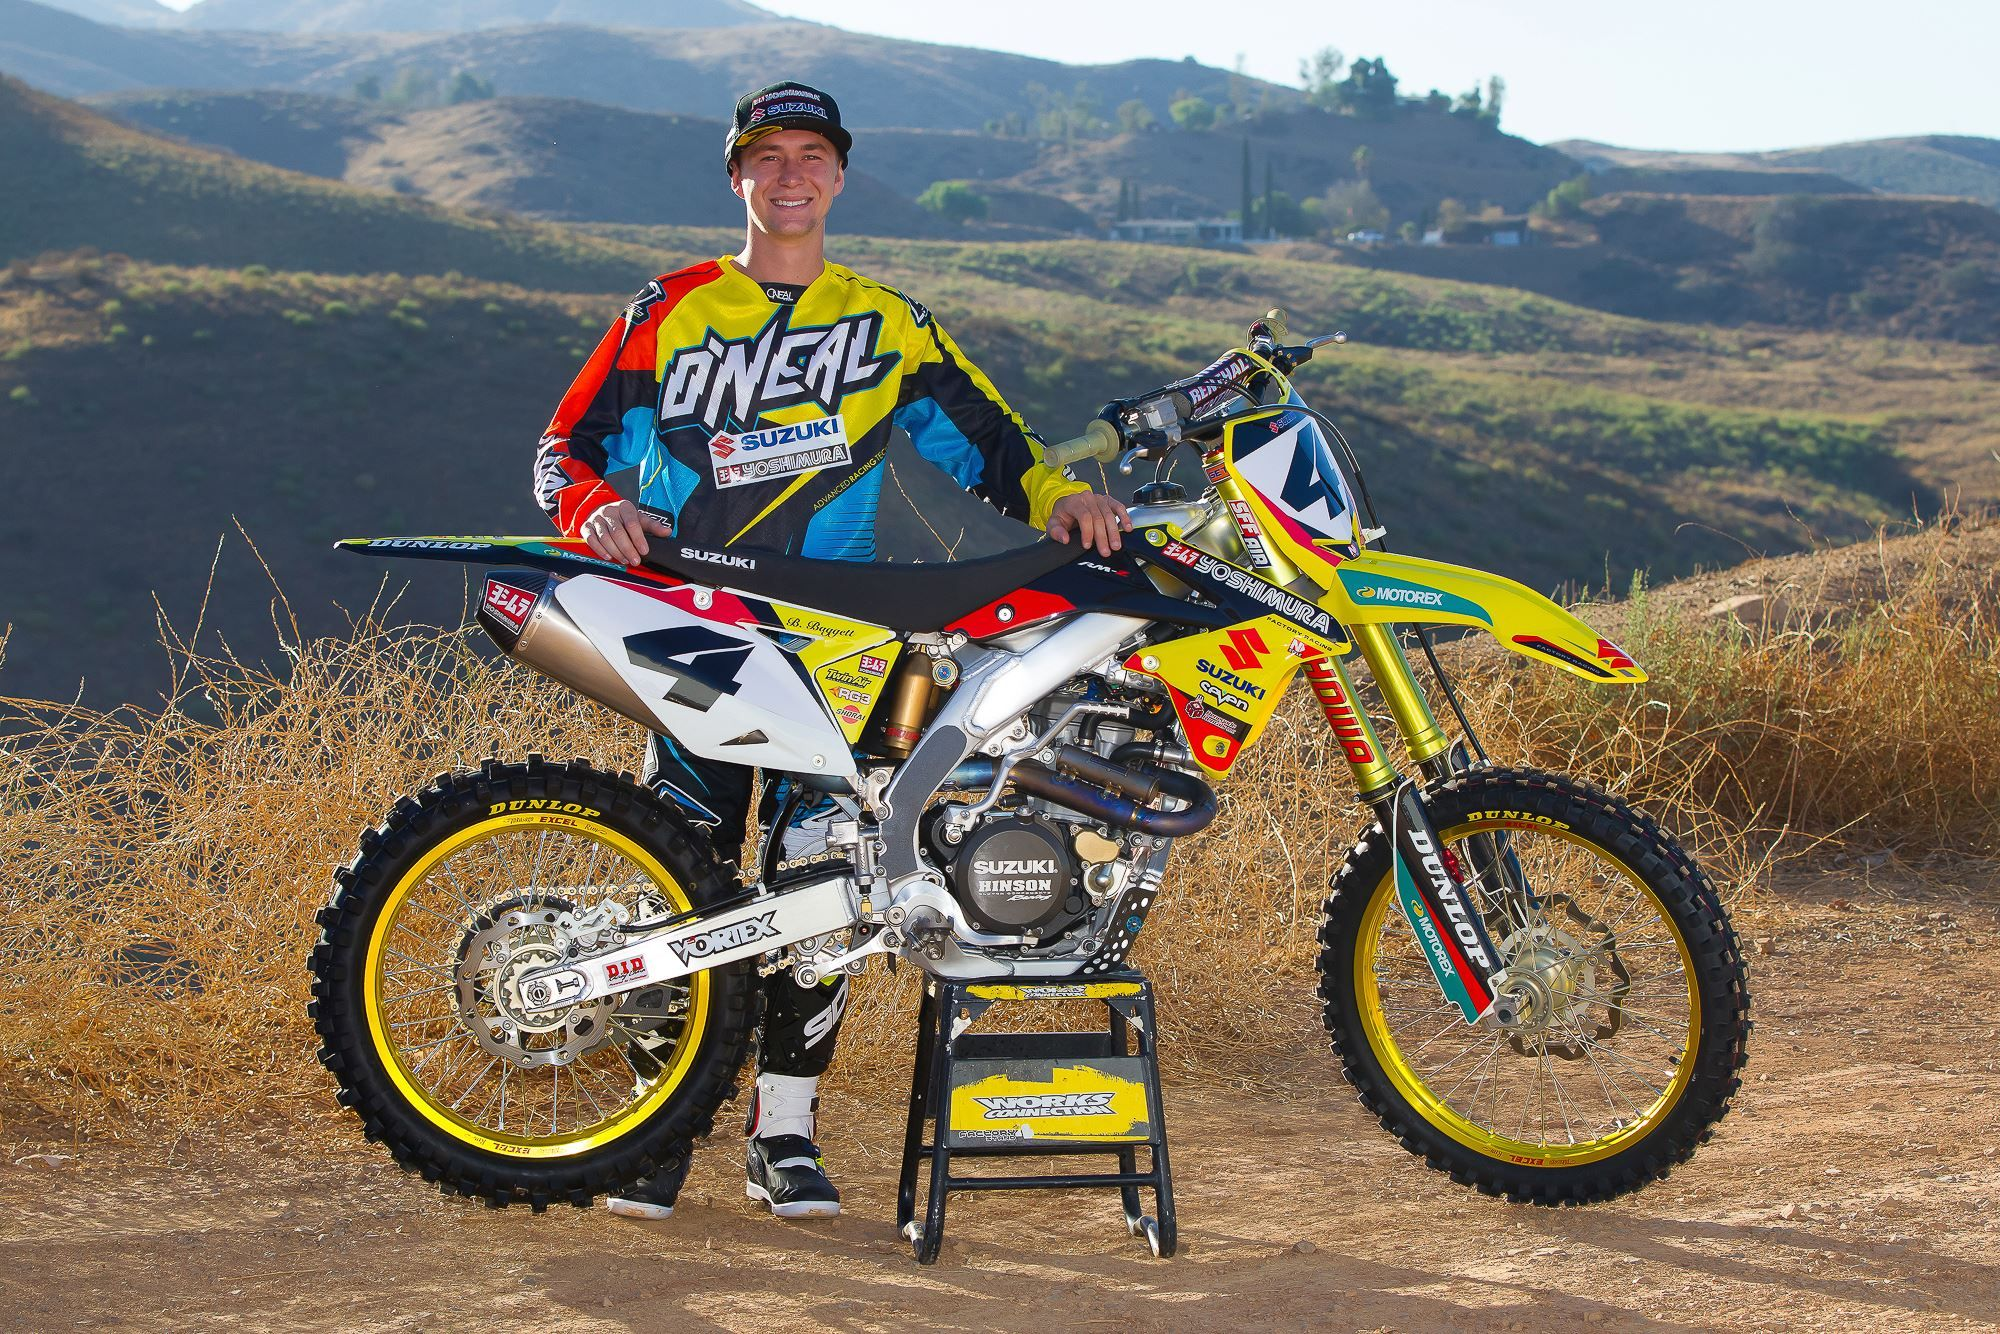 Yoshimura Suzuki Welcomes Blake Baggett To The Team Suzuki Motocross Racing Bikes Suzuki Dirt Bikes